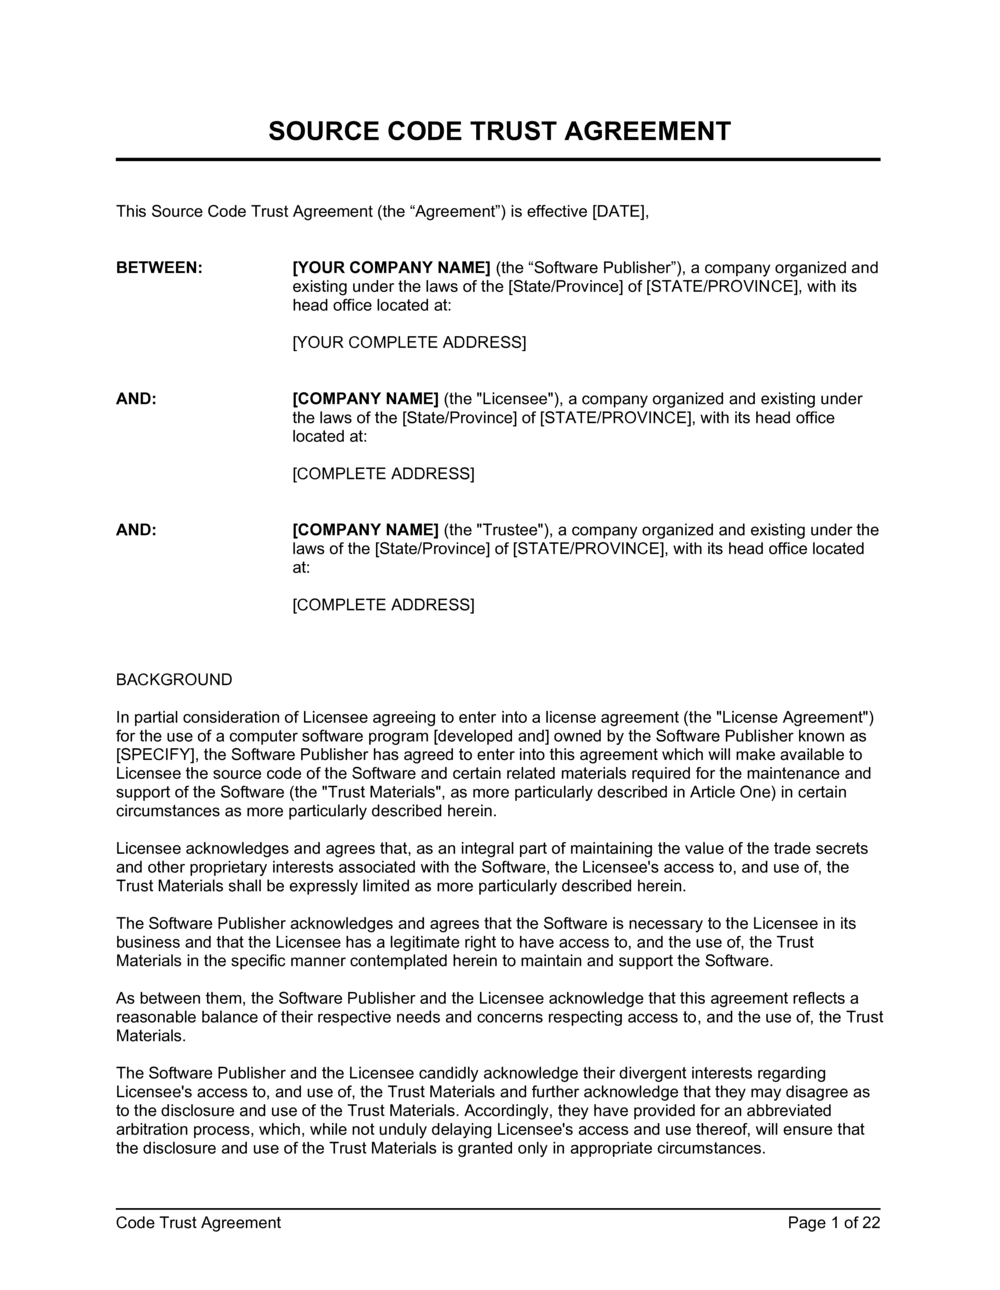 Business-in-a-Box's Source Code Trust Agreement 2 Template